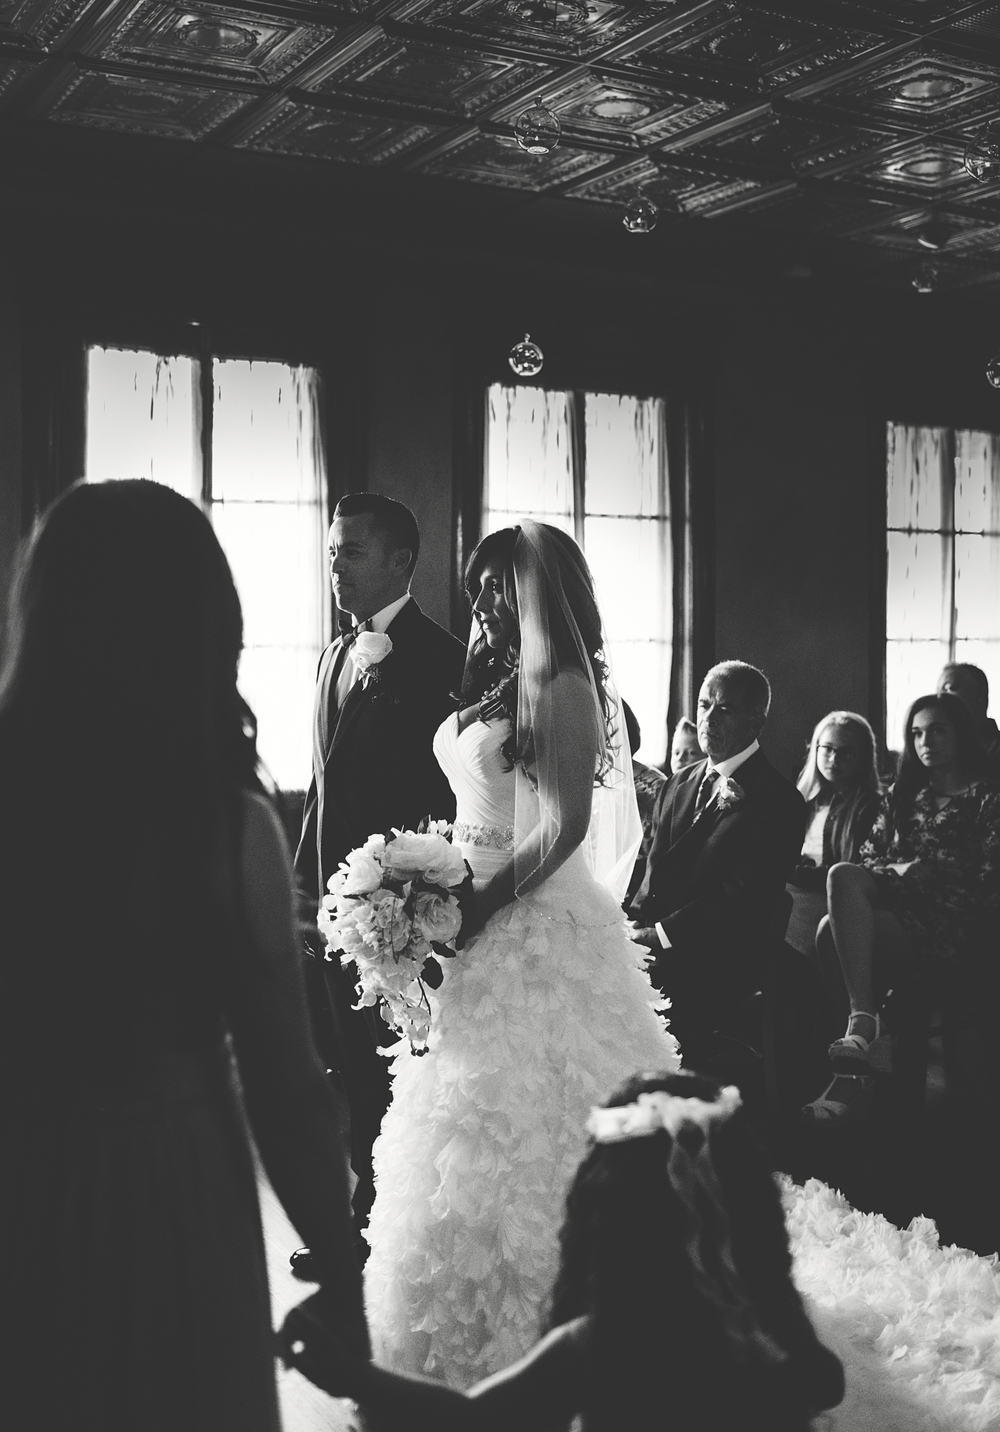 wedding 2015 (49 of 270)final.jpg